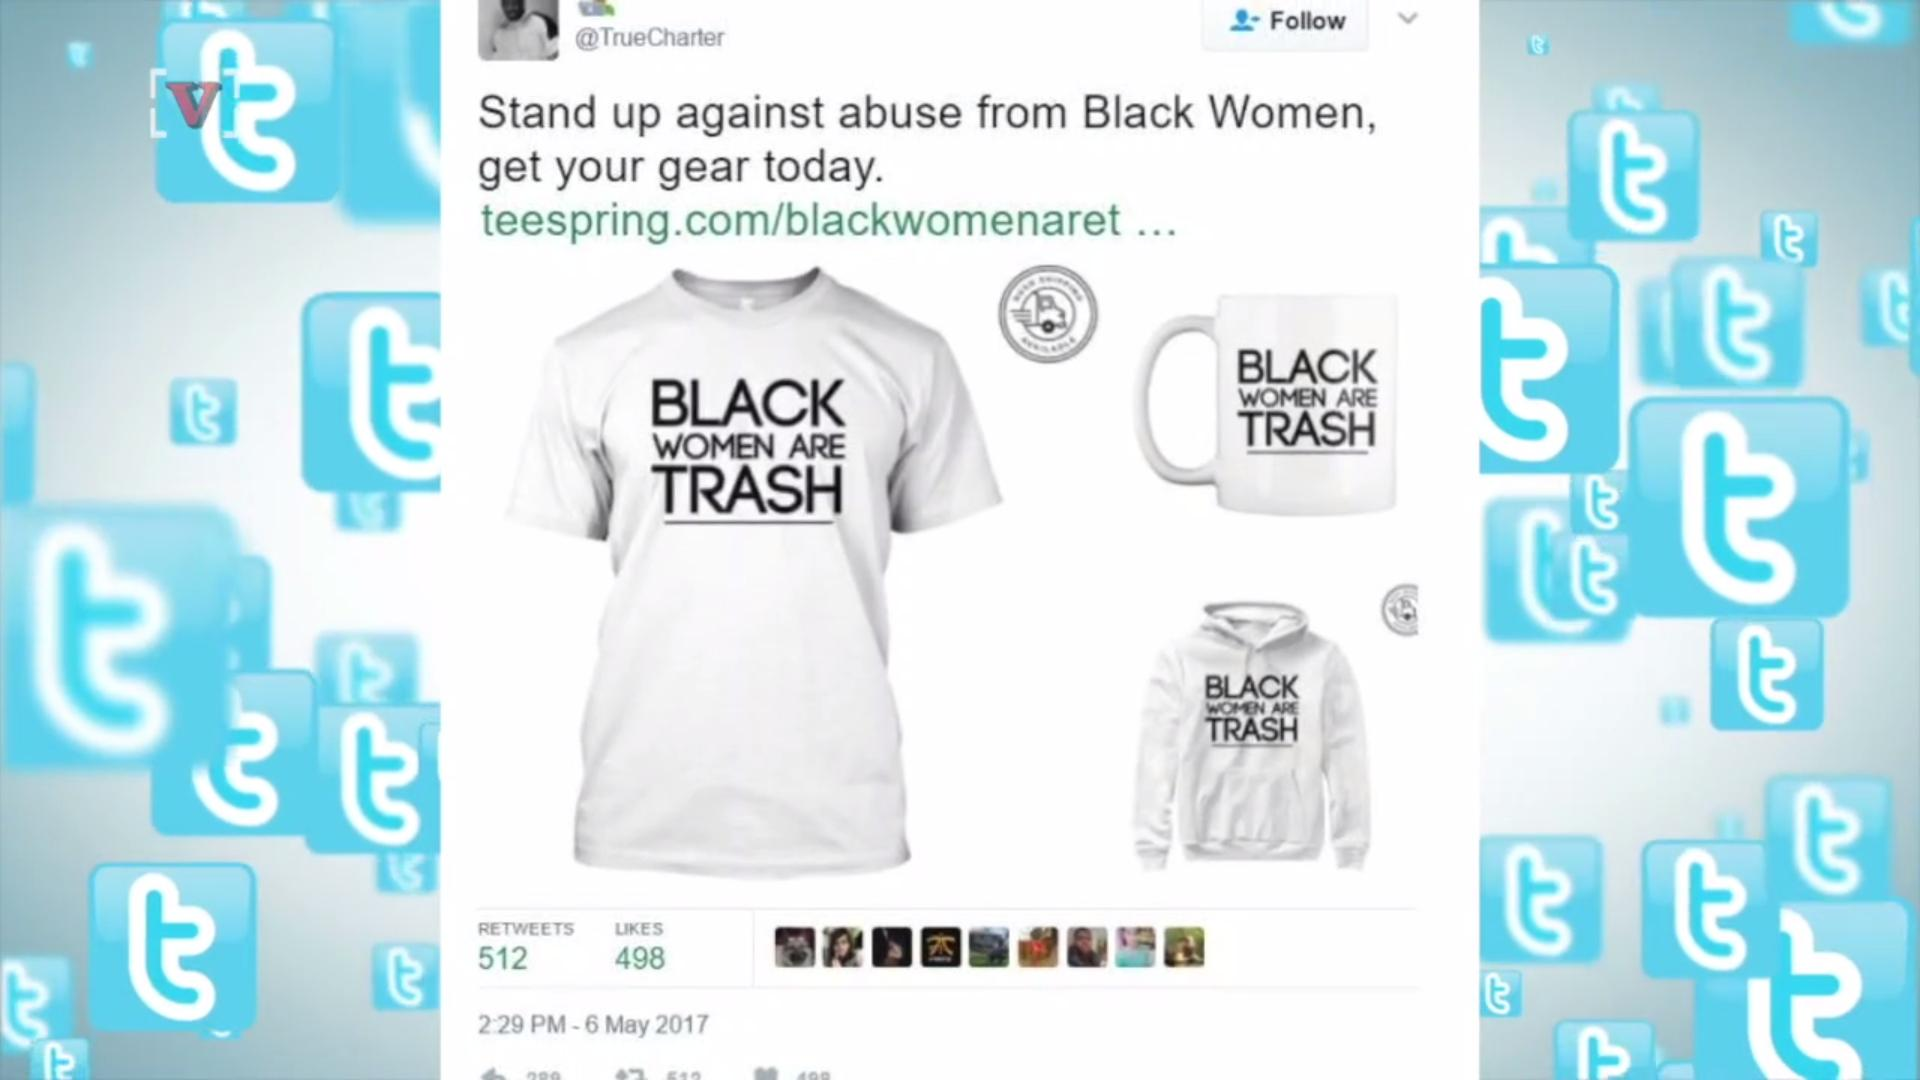 Teespring Apologizes for Allowing 'Black Women Are Trash' T-Shirts on Site